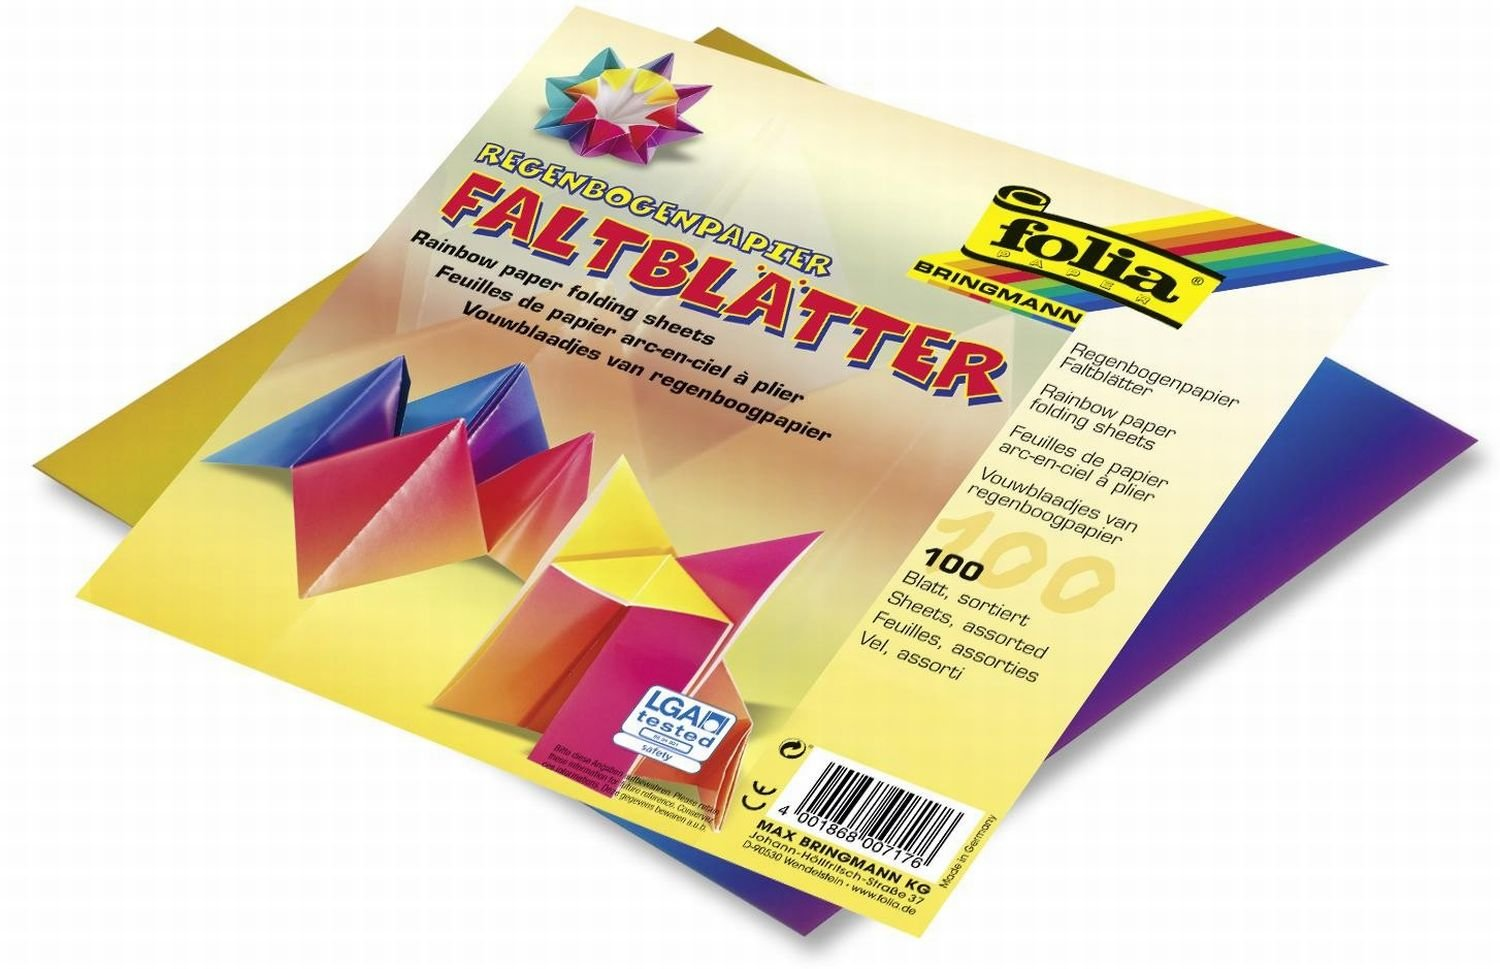 Global Art Materials Folia Origami Paper Rainbow Pattern 6-Inch-by-6-Inch Assorted Colors 100 Sheets 6 x 6 716